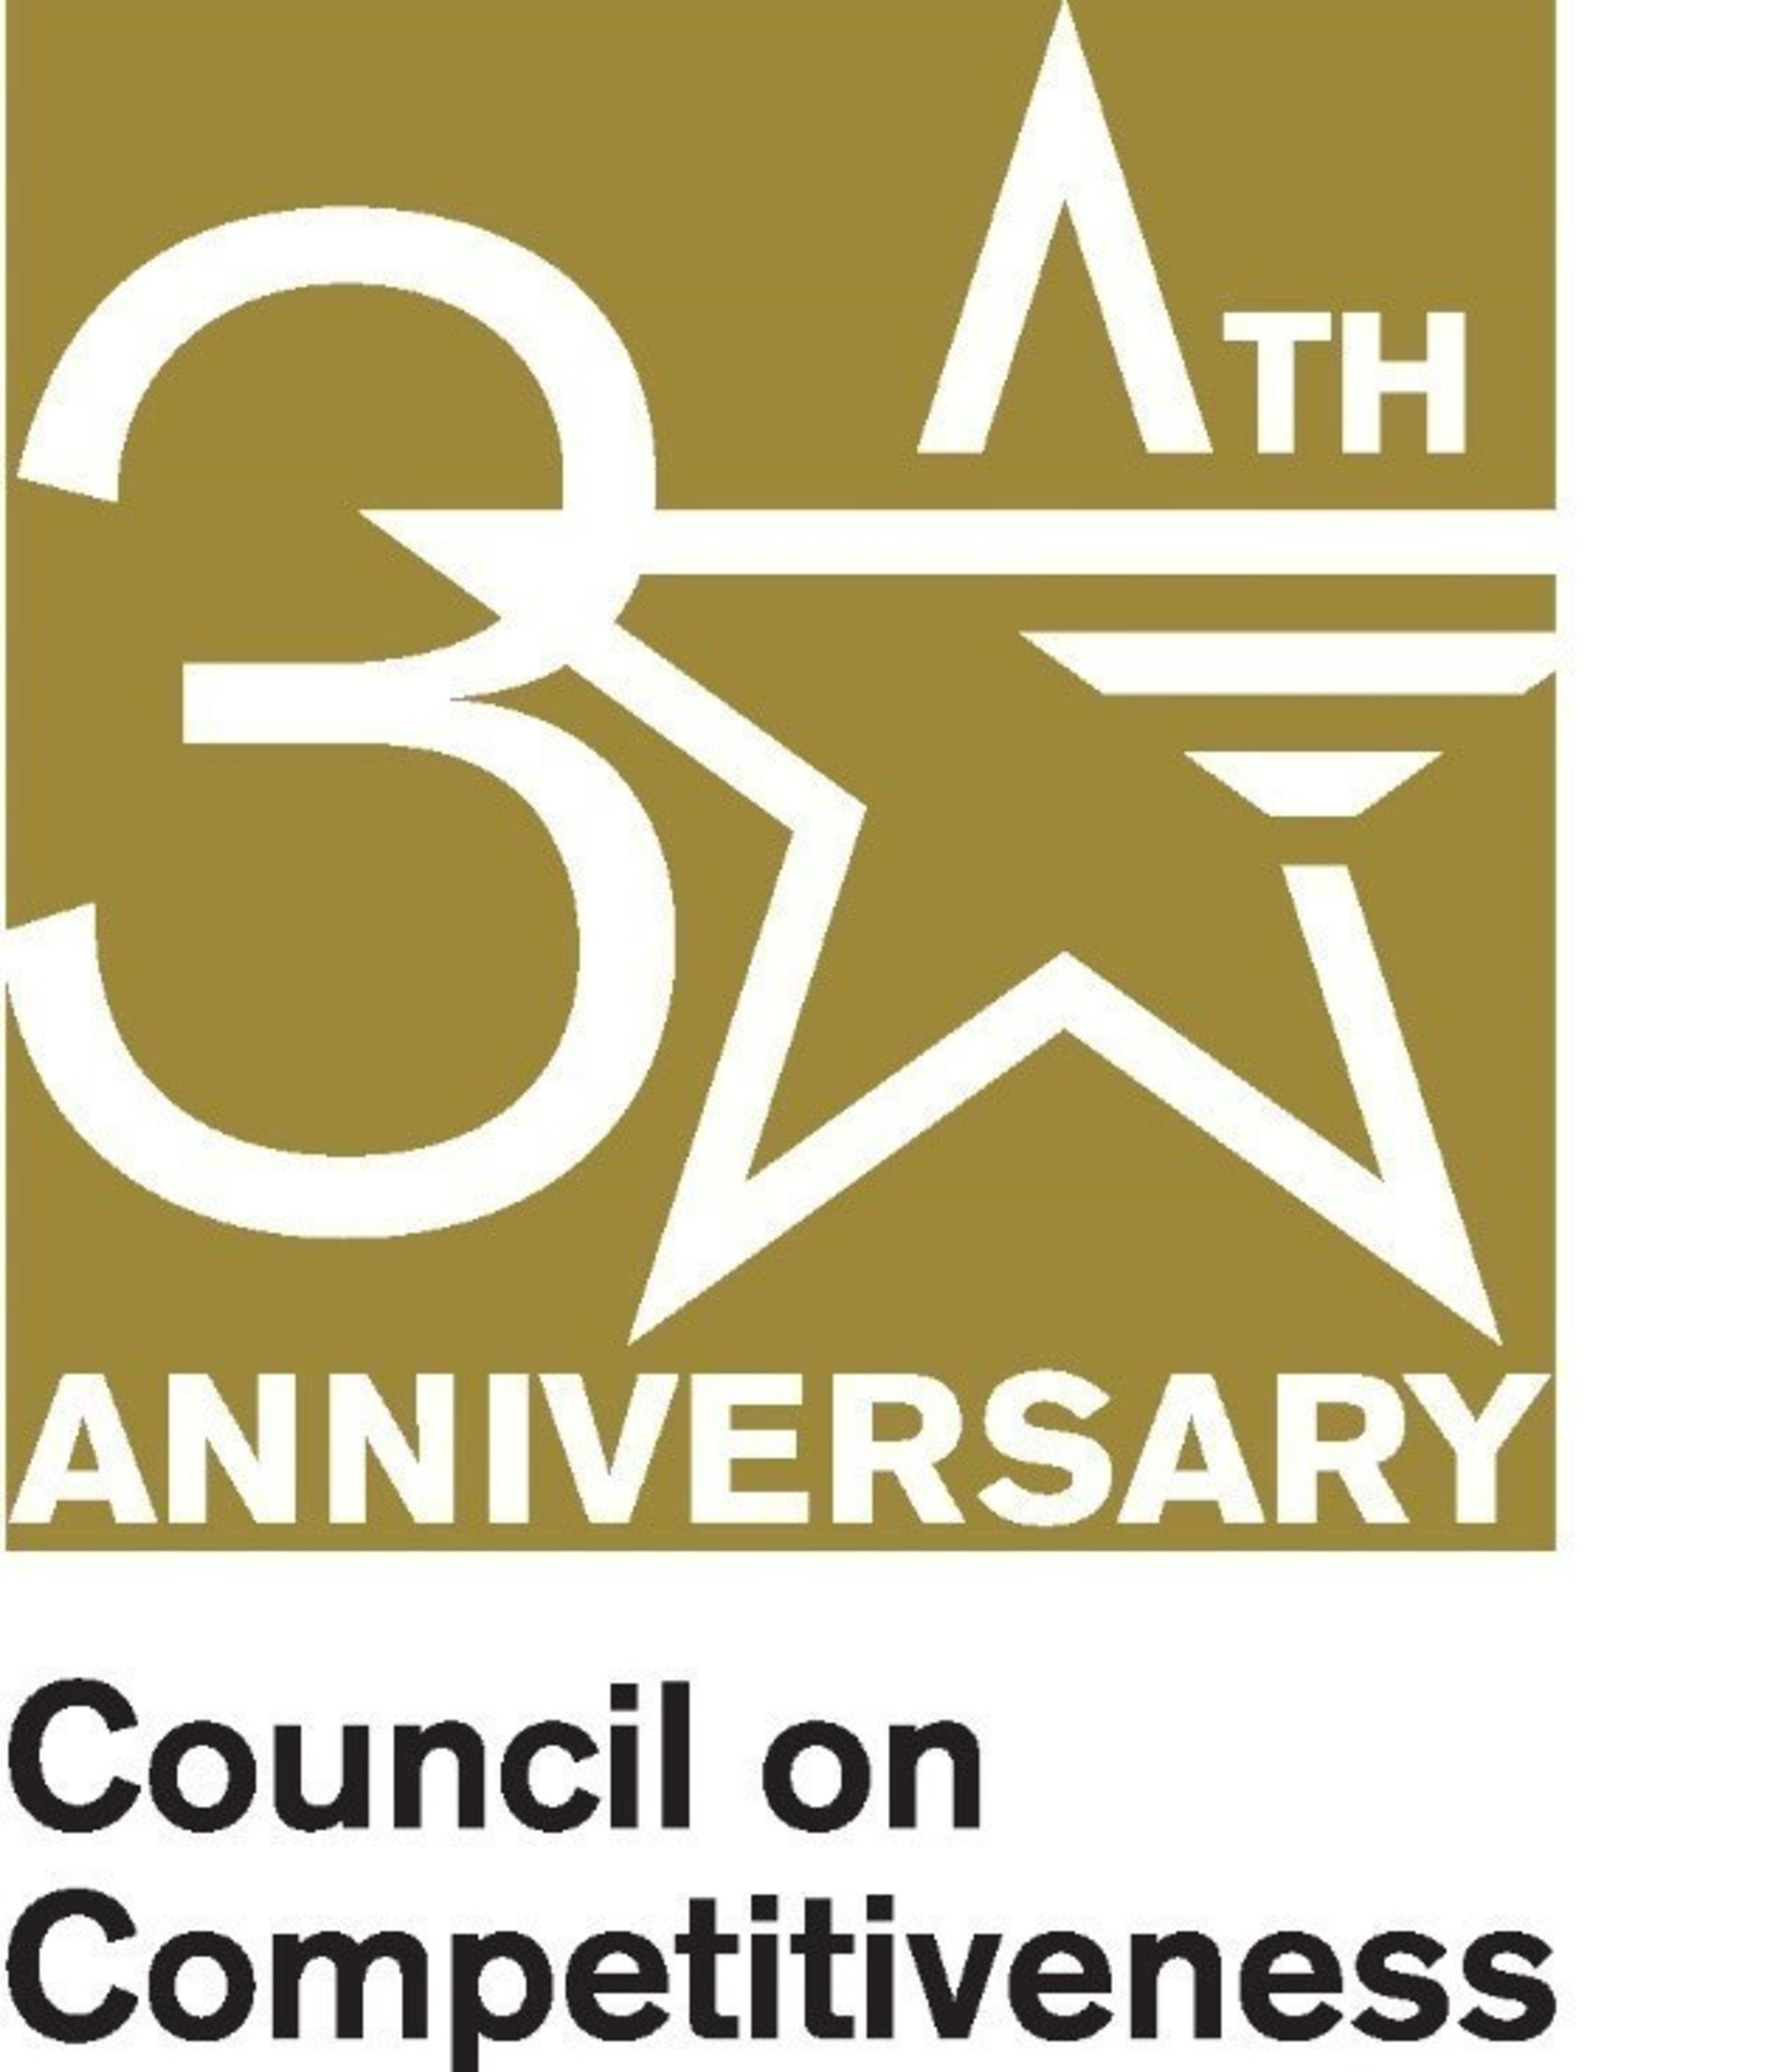 30th Anniversary - Council on Competitiveness